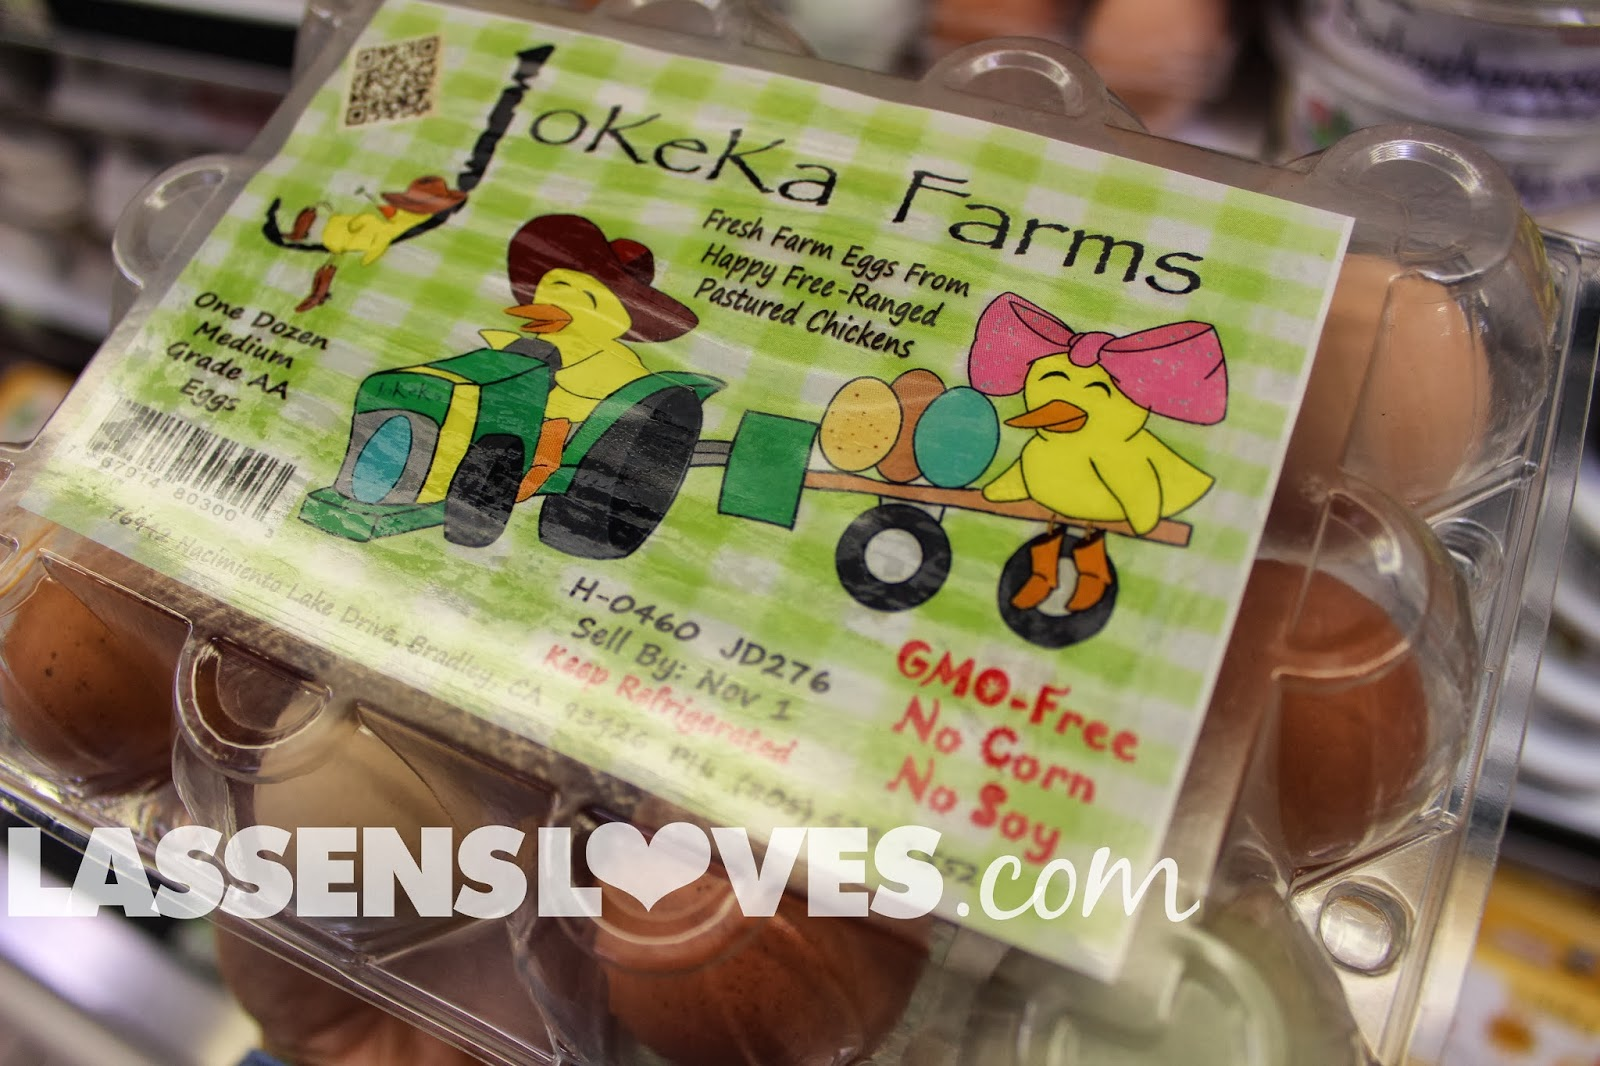 lassensloves.com, Lassen's, JoKeKa+Farm+Eggs